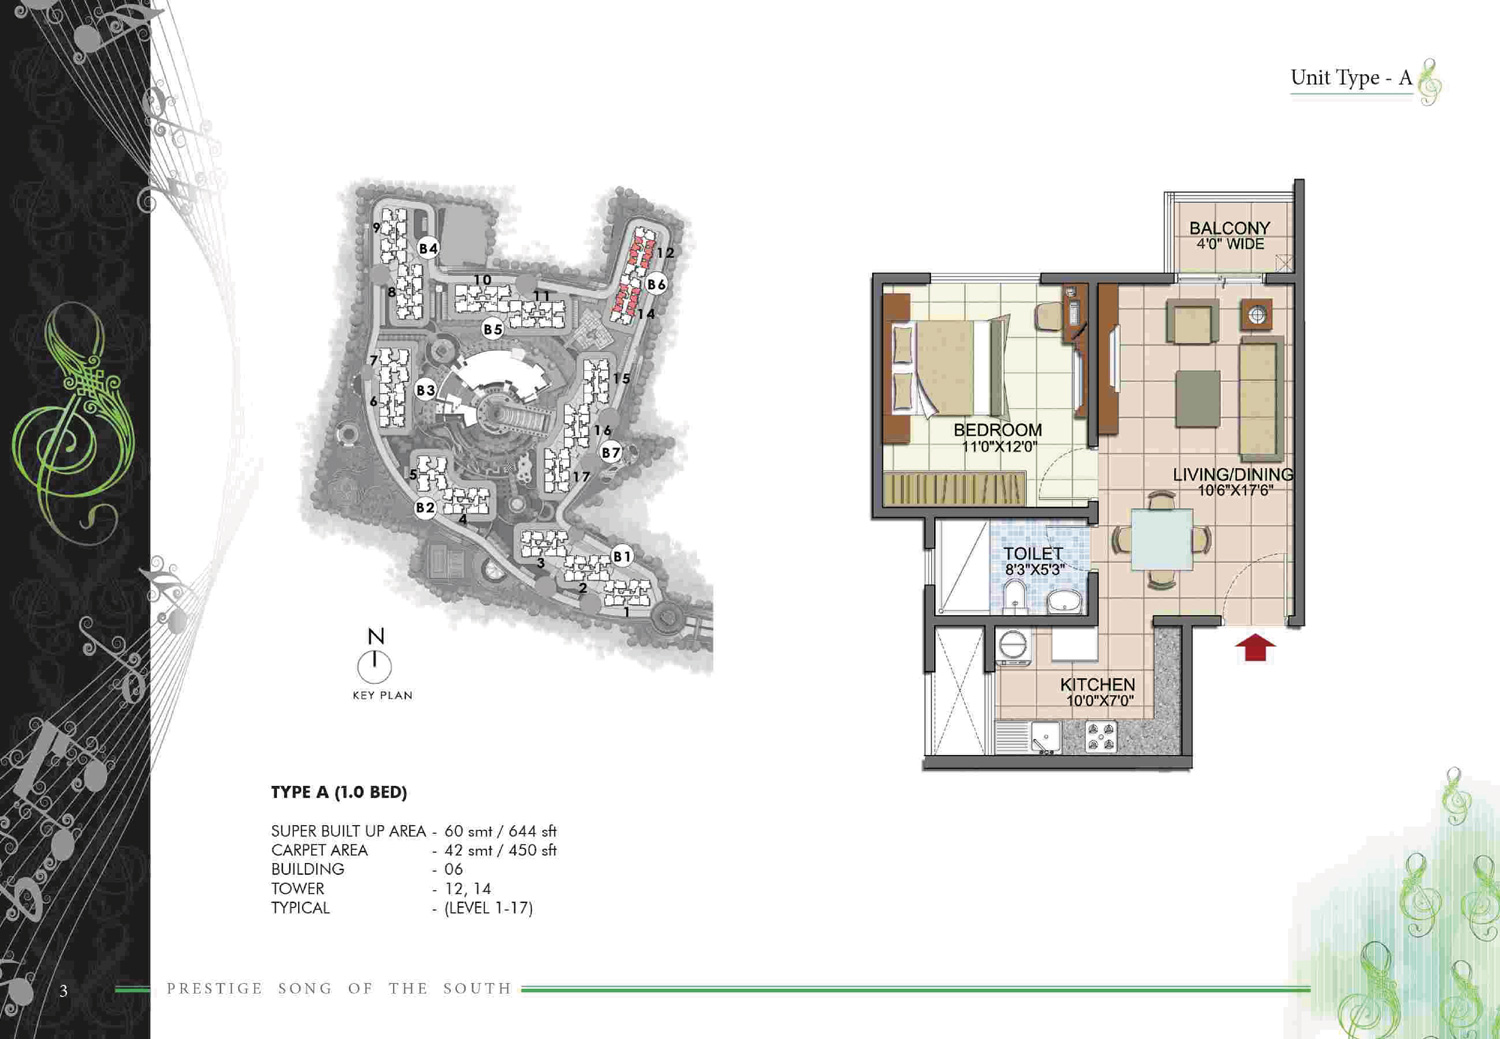 Type A1 - 644 Sq Ft